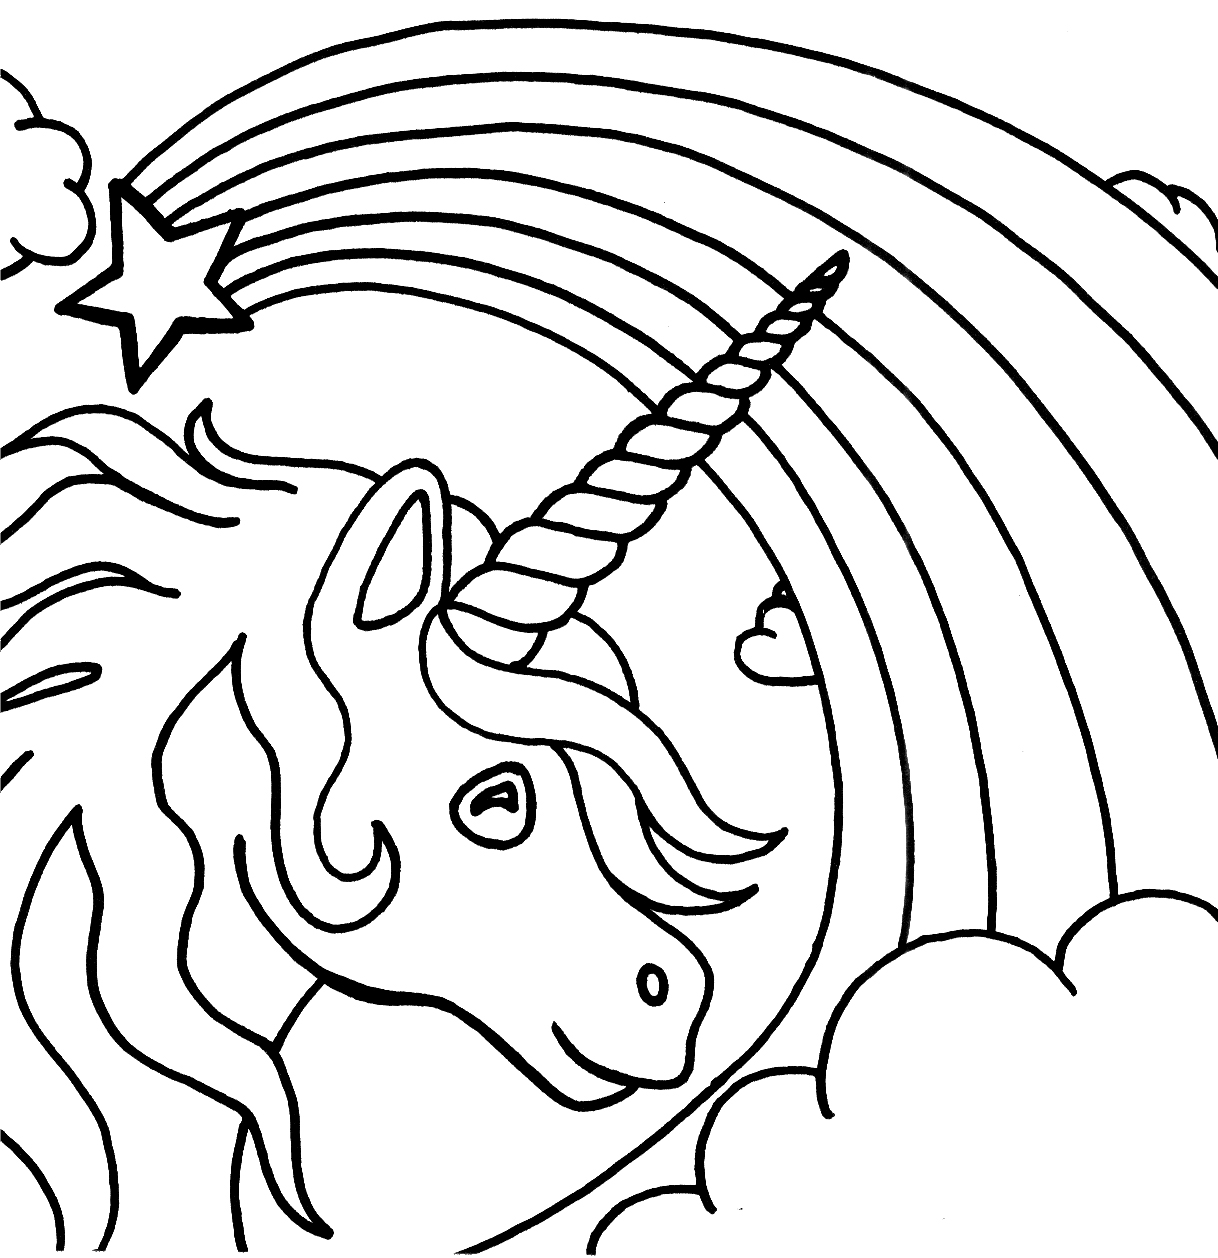 unicorn printables unicorn coloring pages free download on clipartmag unicorn printables